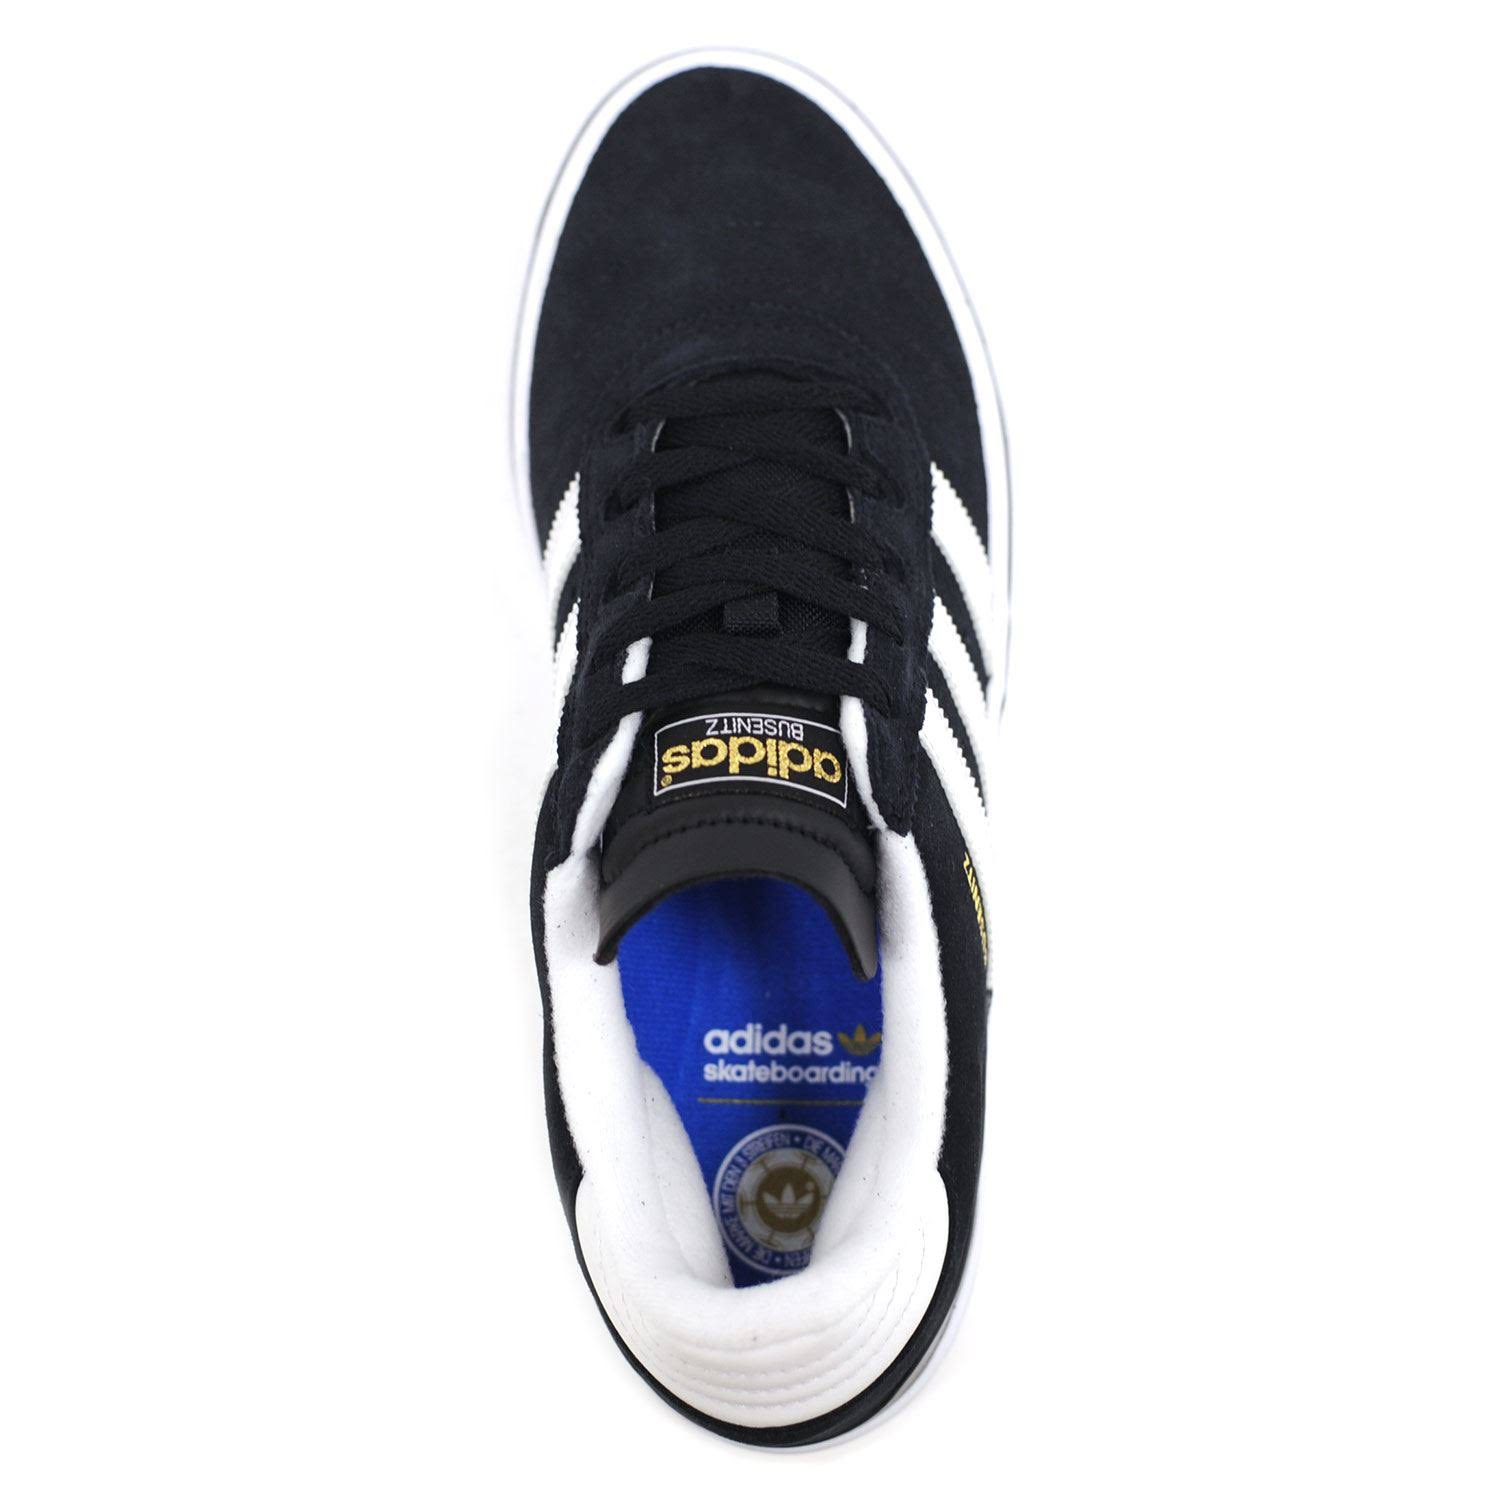 11 5 Vulc black Men's Adidas Adv Busenitz white Black Black Shoe wqZFFT